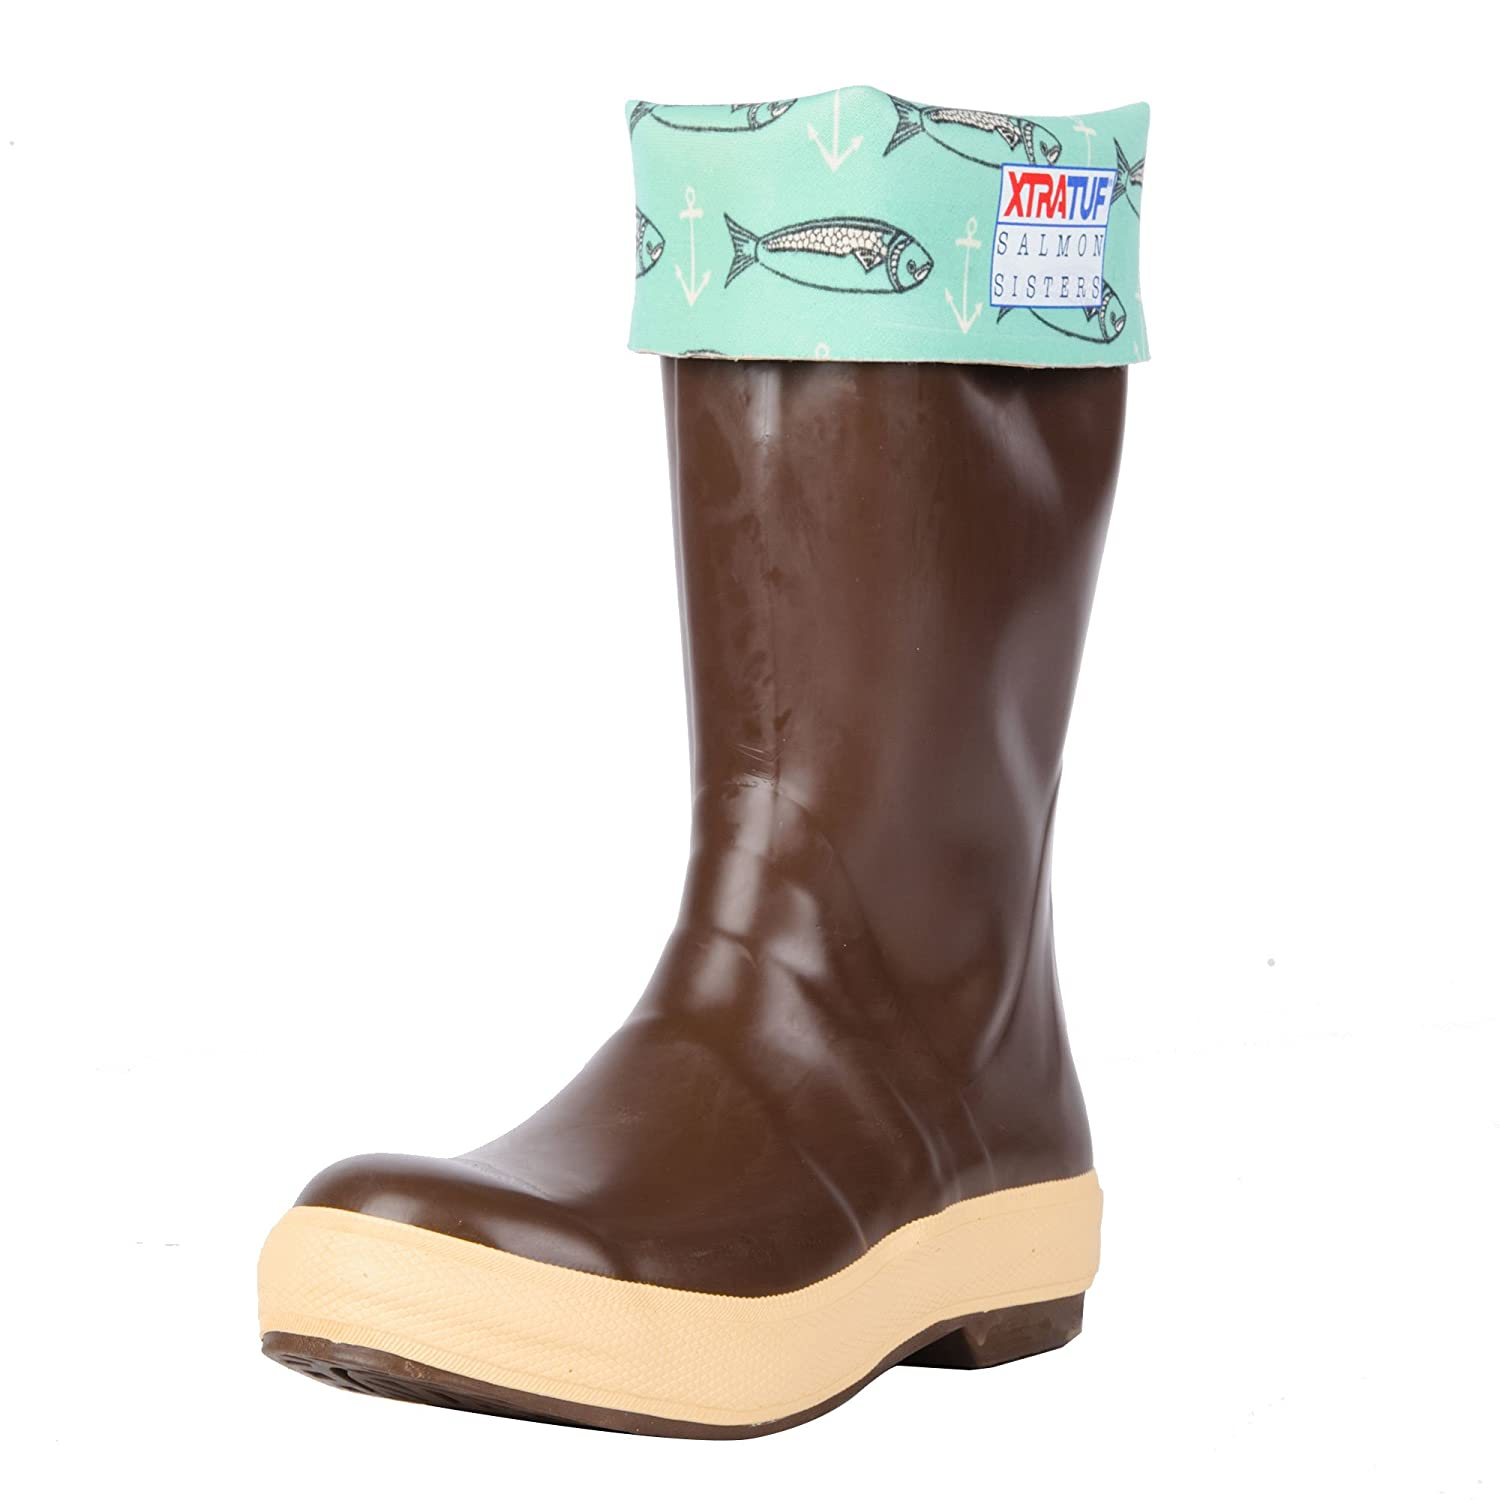 Xtratuf 22390-CTM-080 Salmon Sister Legacy Series 15' Lined Neoprene Women' s Fishing Boots, Copper/Fish Print, Size 8